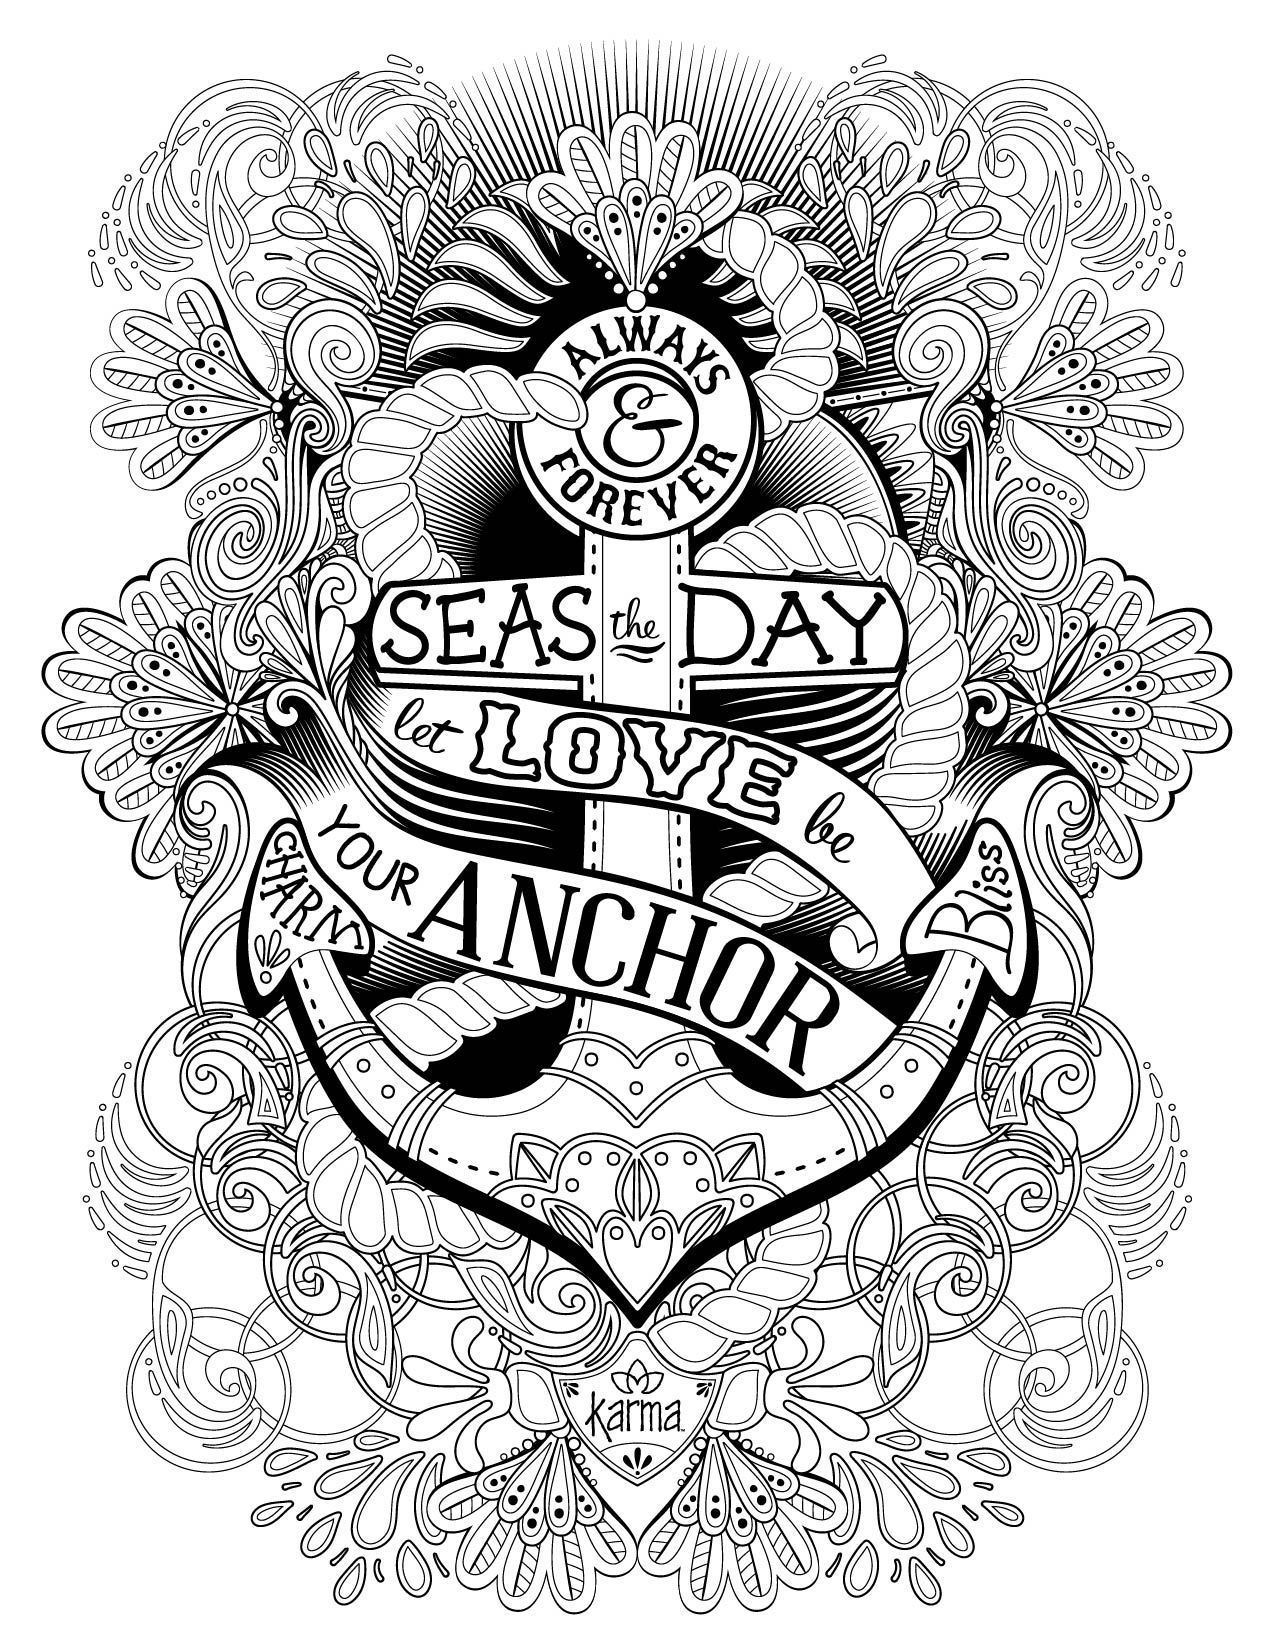 Anchor Free And Printable Coloring Page By Karma Gifts Skull Coloring Pages Valentine Coloring Pages Emoji Coloring Pages